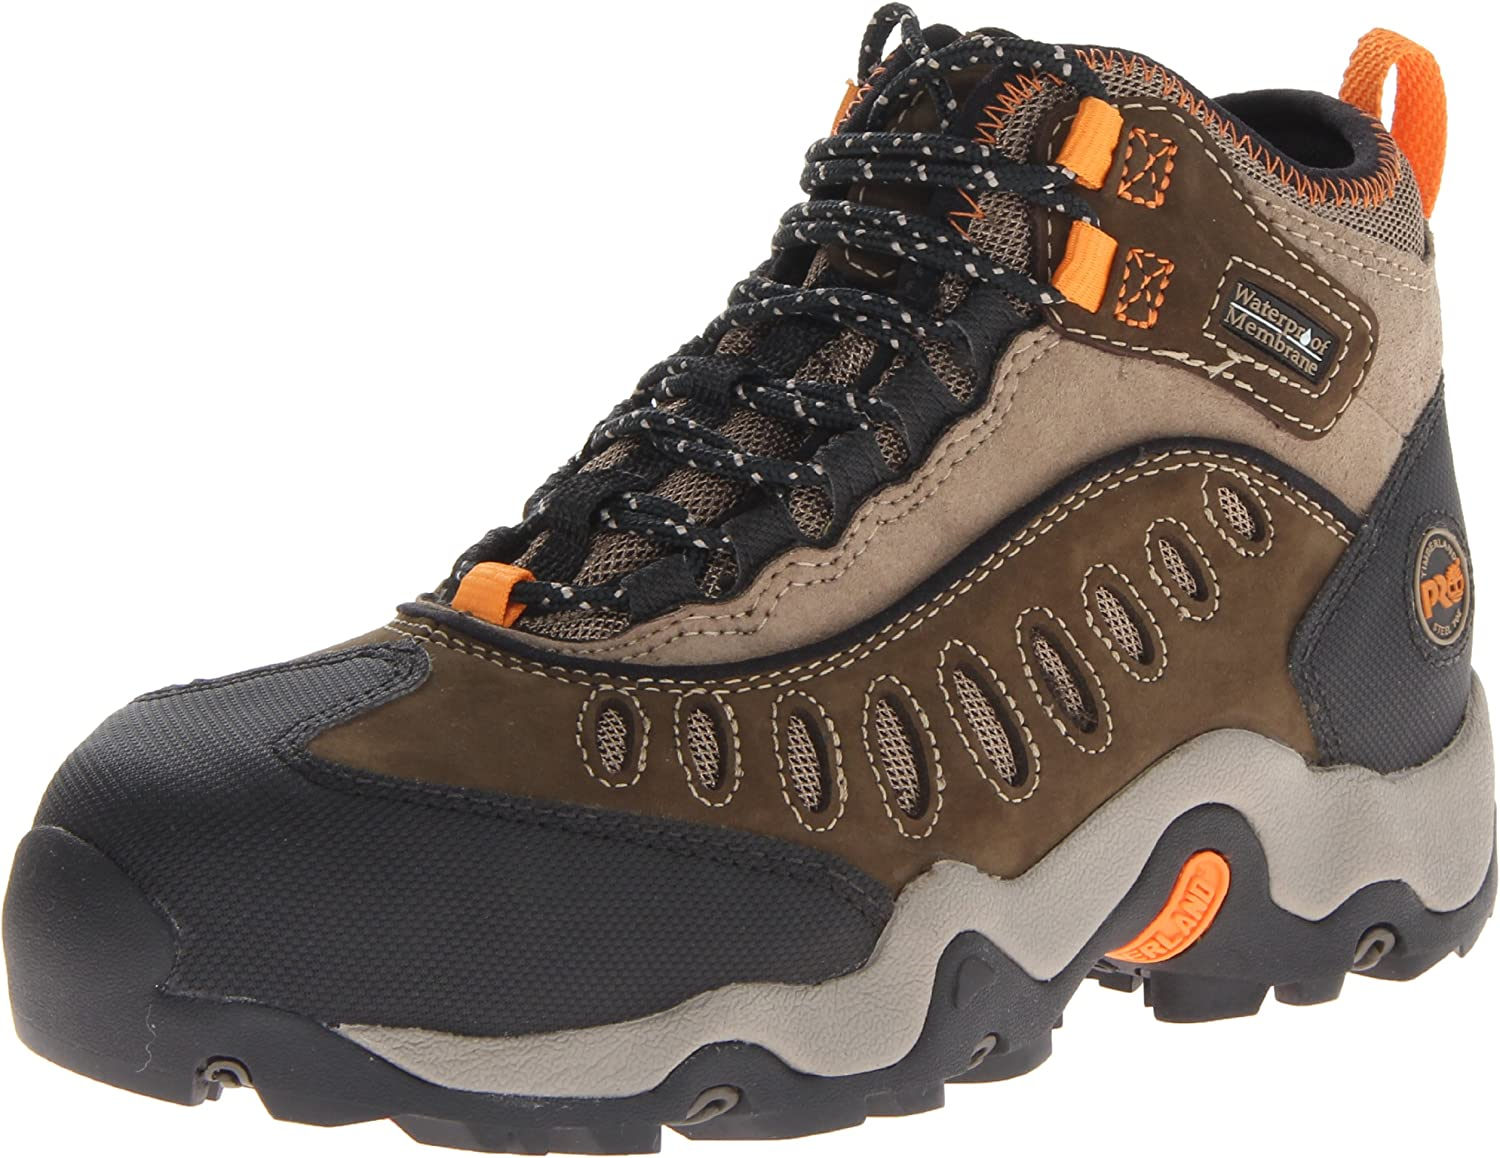 Timberland PRO Limited time cheap sale Men's Mudslinger Mid Sales Lace-Up S Waterproof Fashion